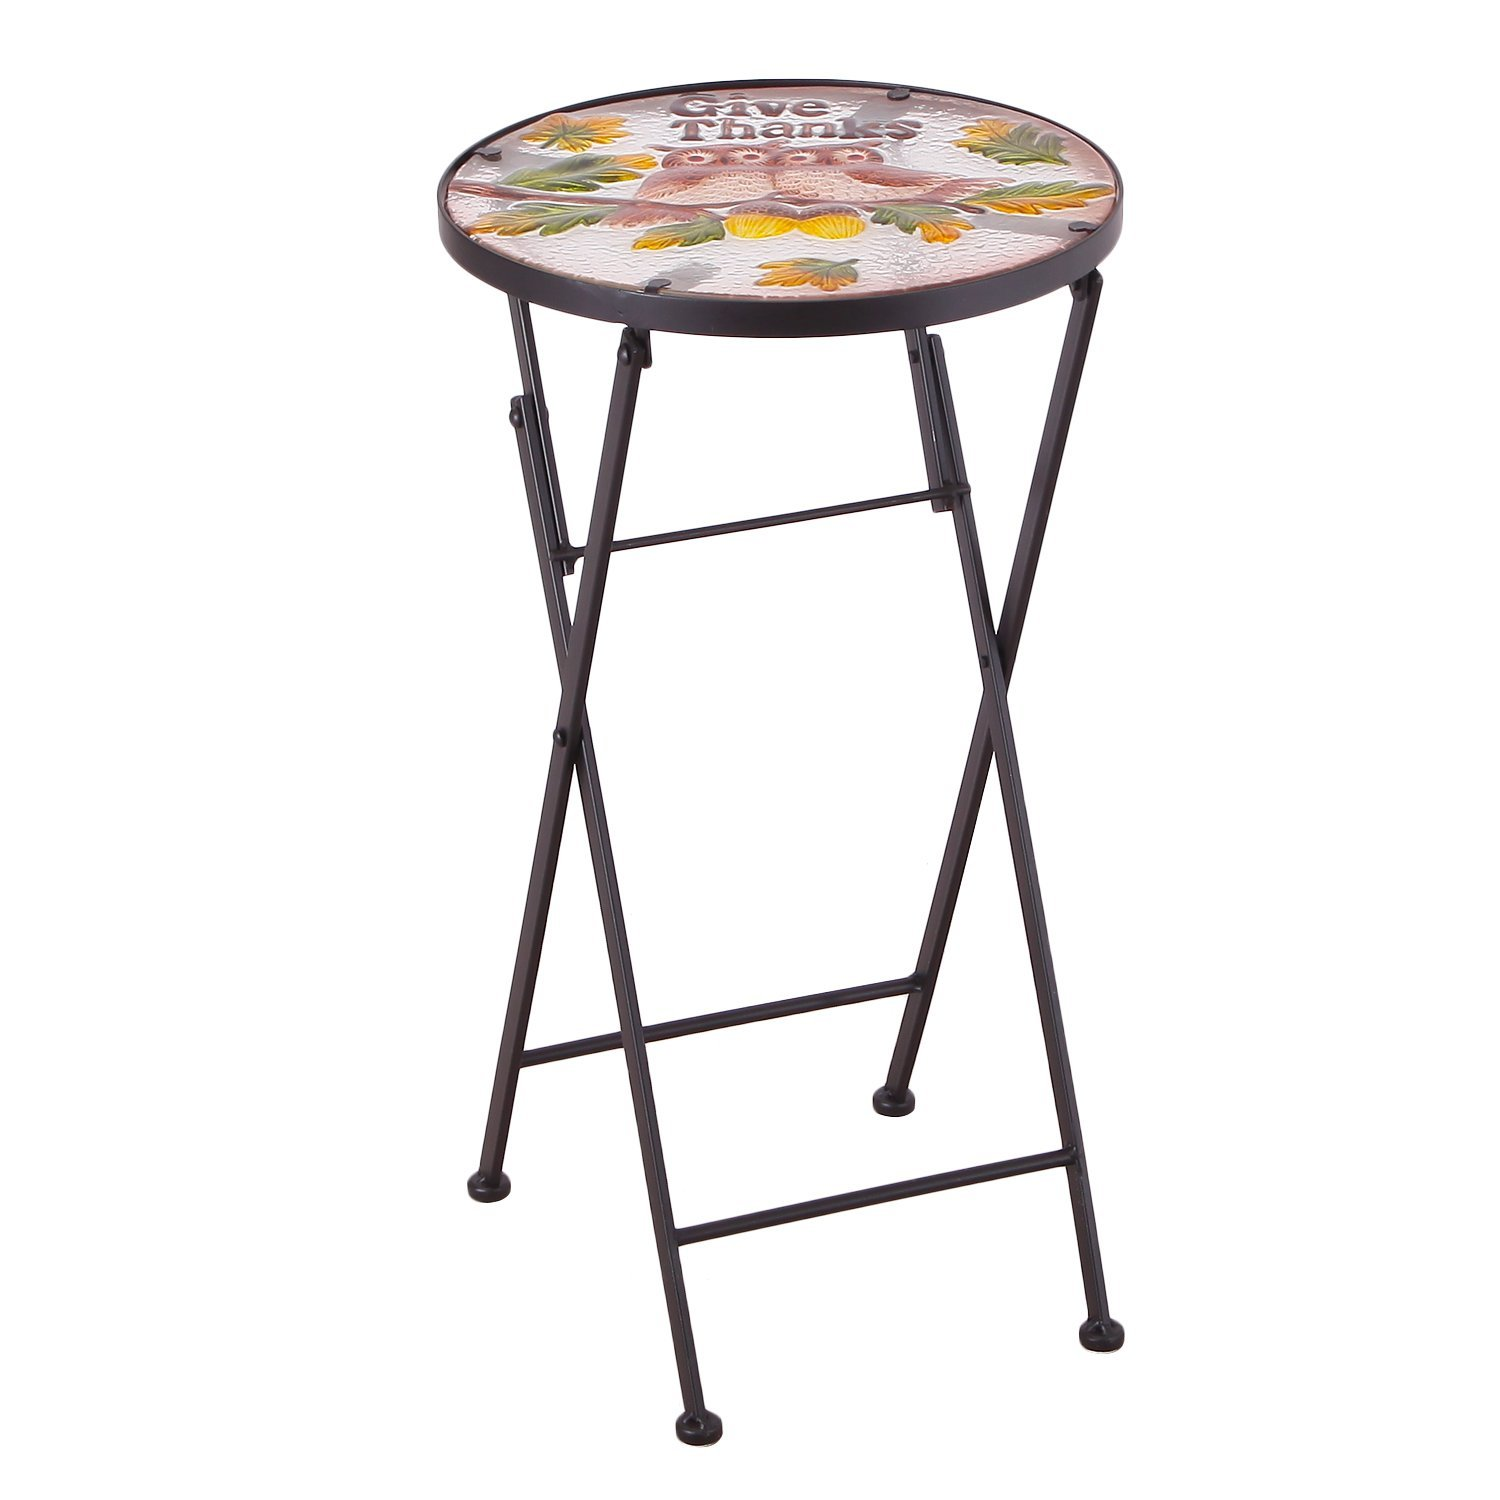 homebeez outdoor indoor foldable plant stand top round zaltana mosaic accent table side end folding for couple owes garden black gloss sideboard inch wide console gold drum coffee